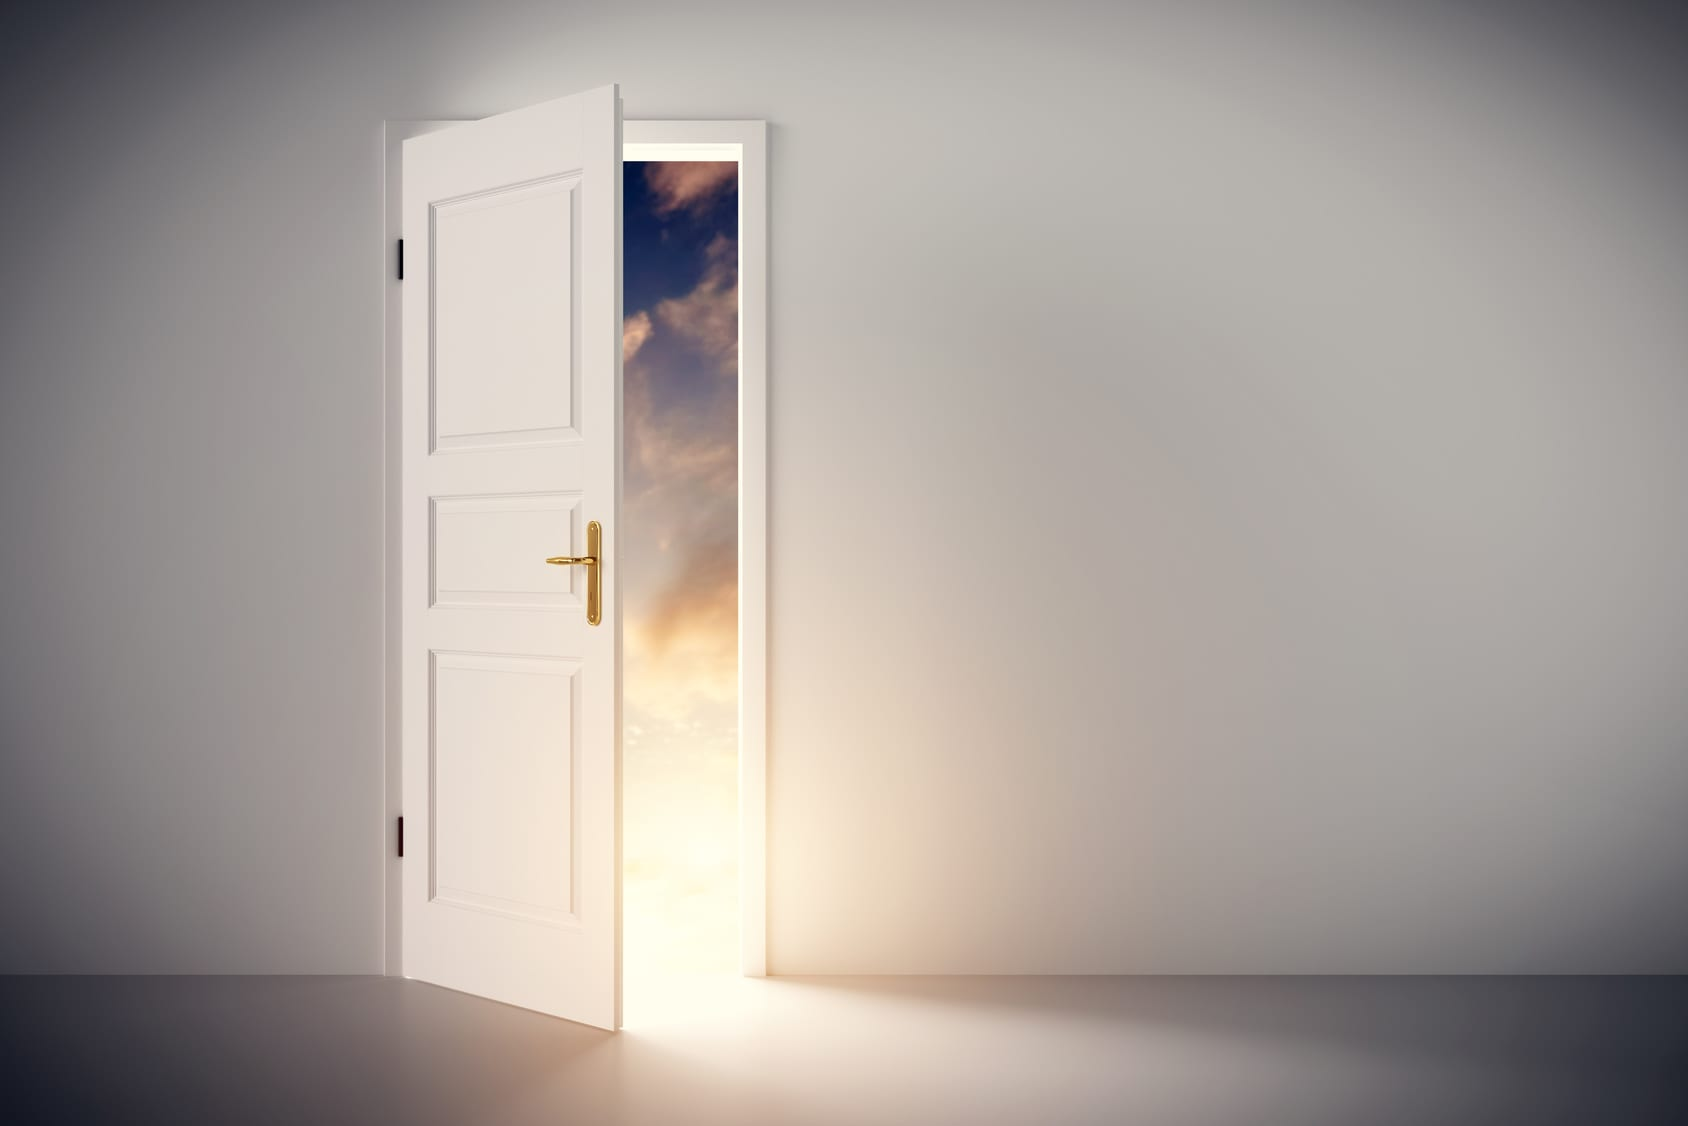 denver broomfield colorado life coaching class open door break through obstacles